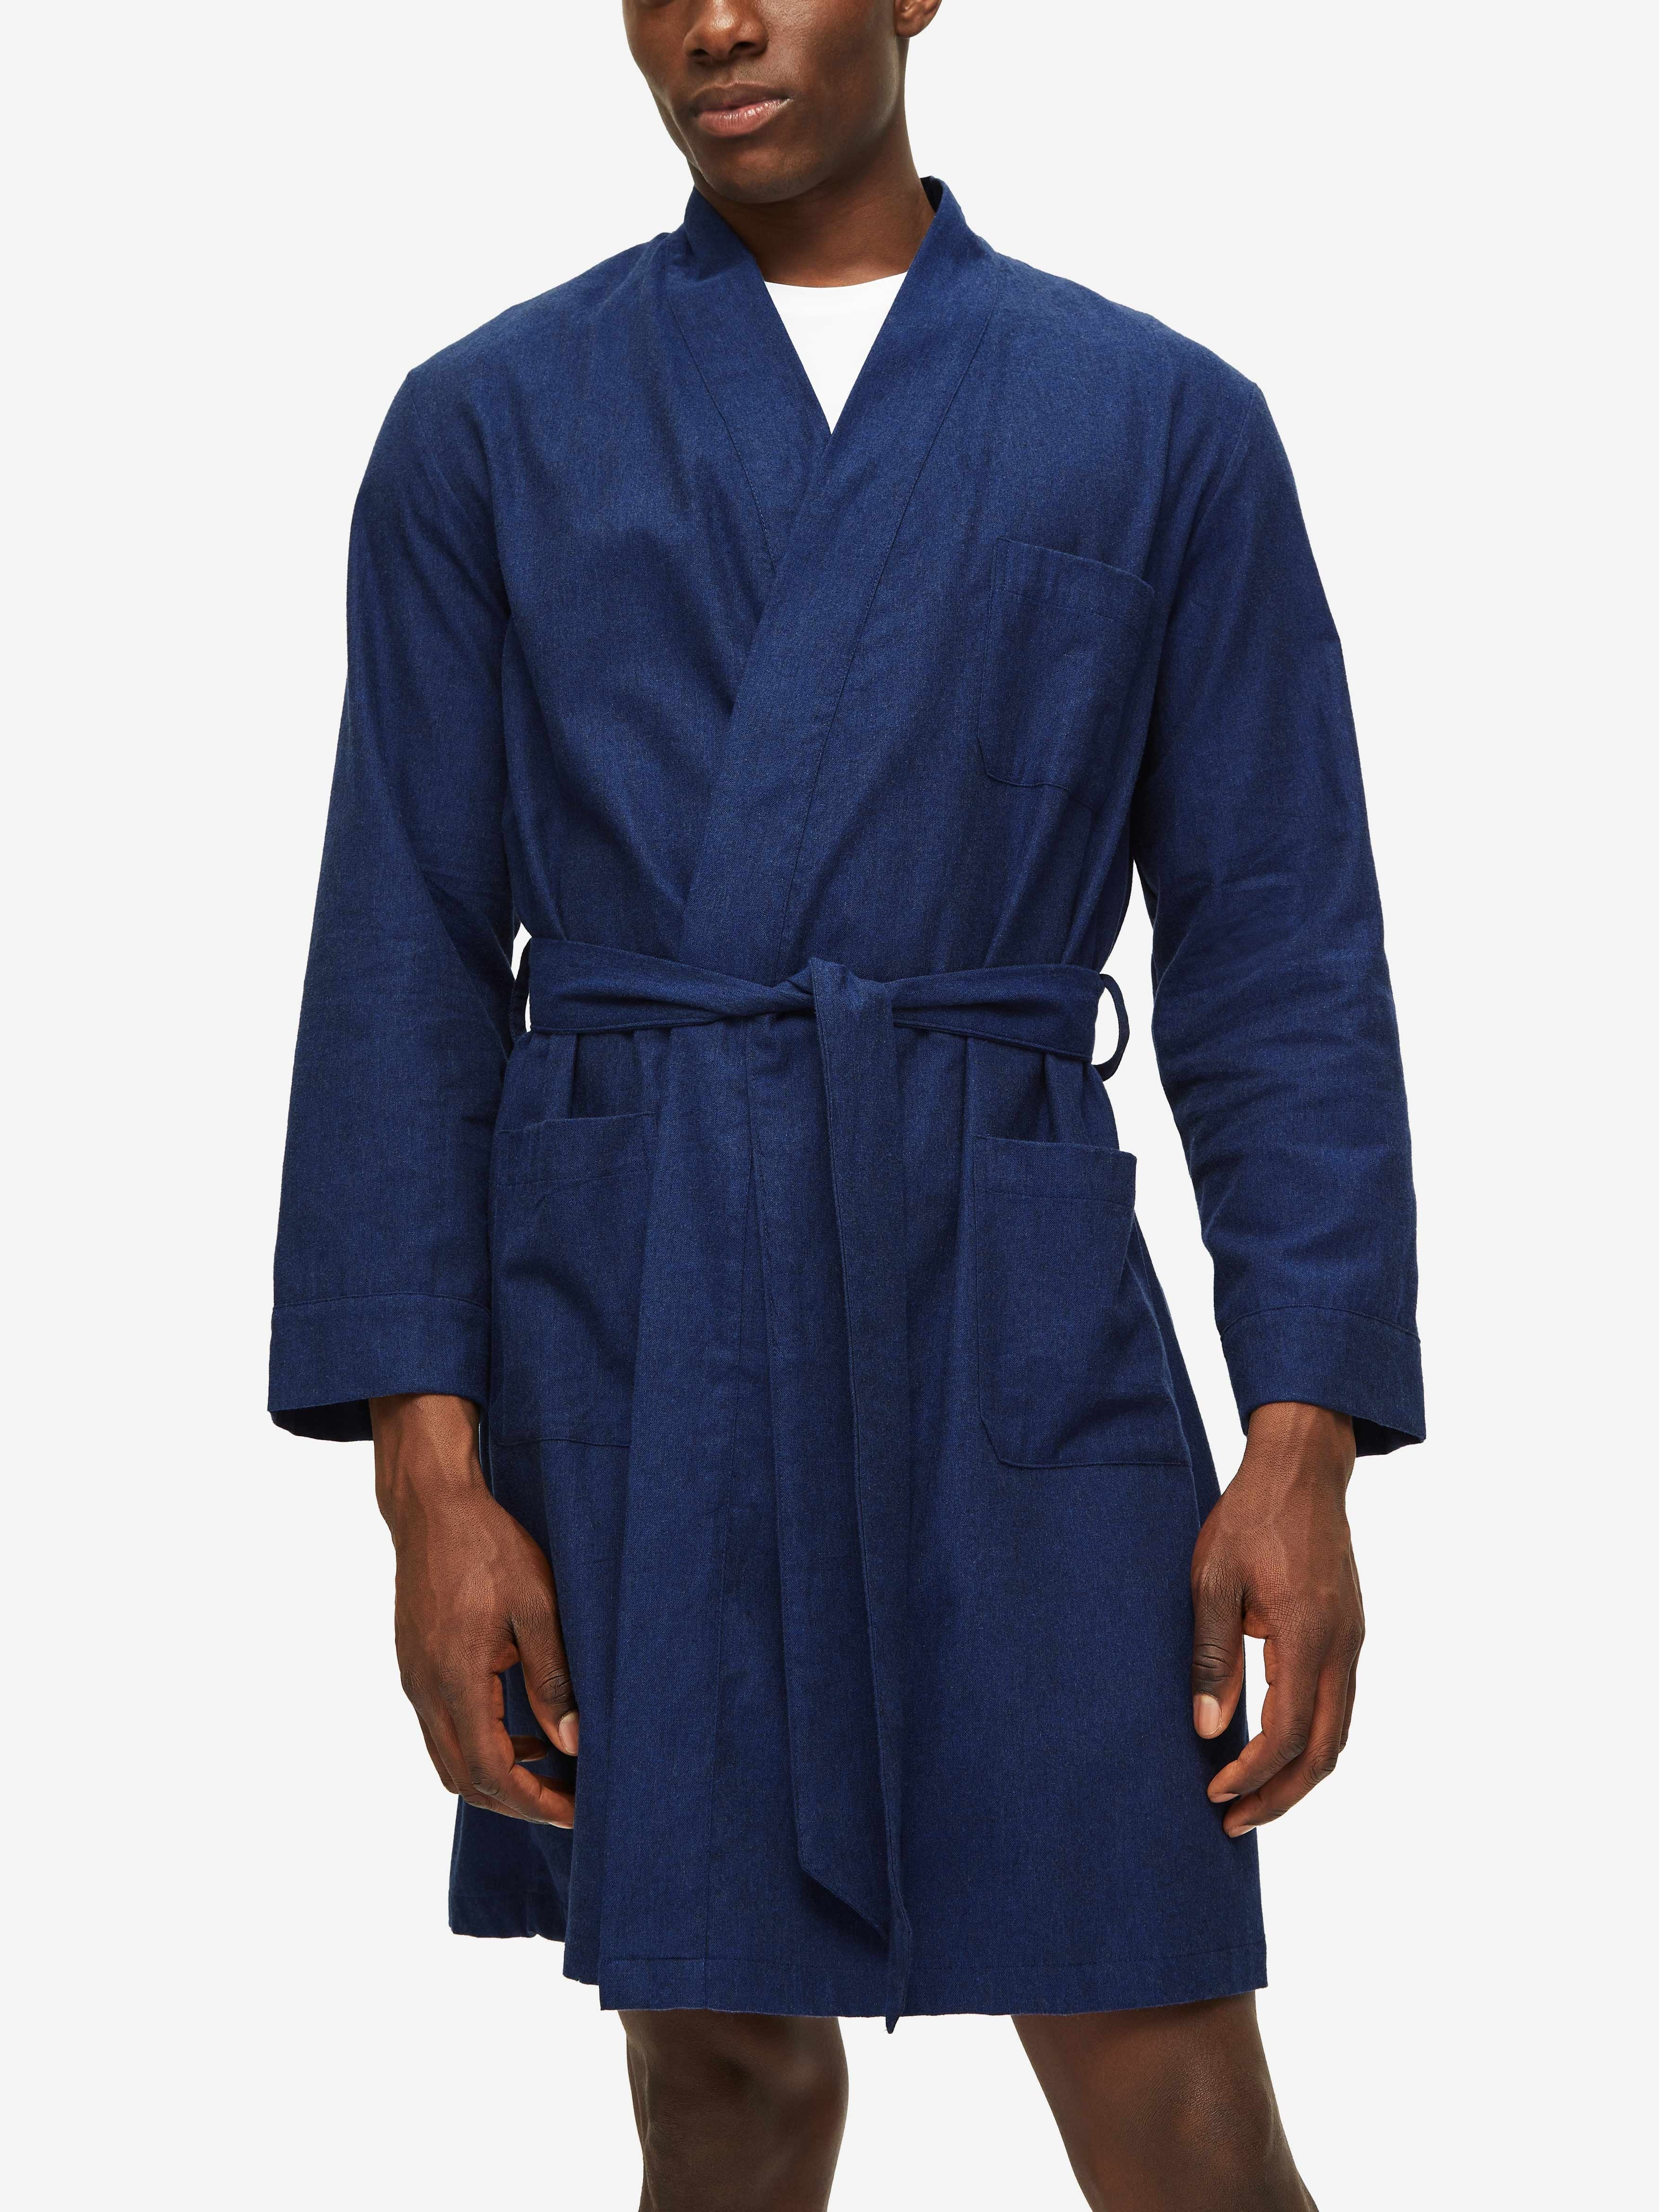 Men's Lounge Gown Balmoral 3 Brushed Cotton Navy